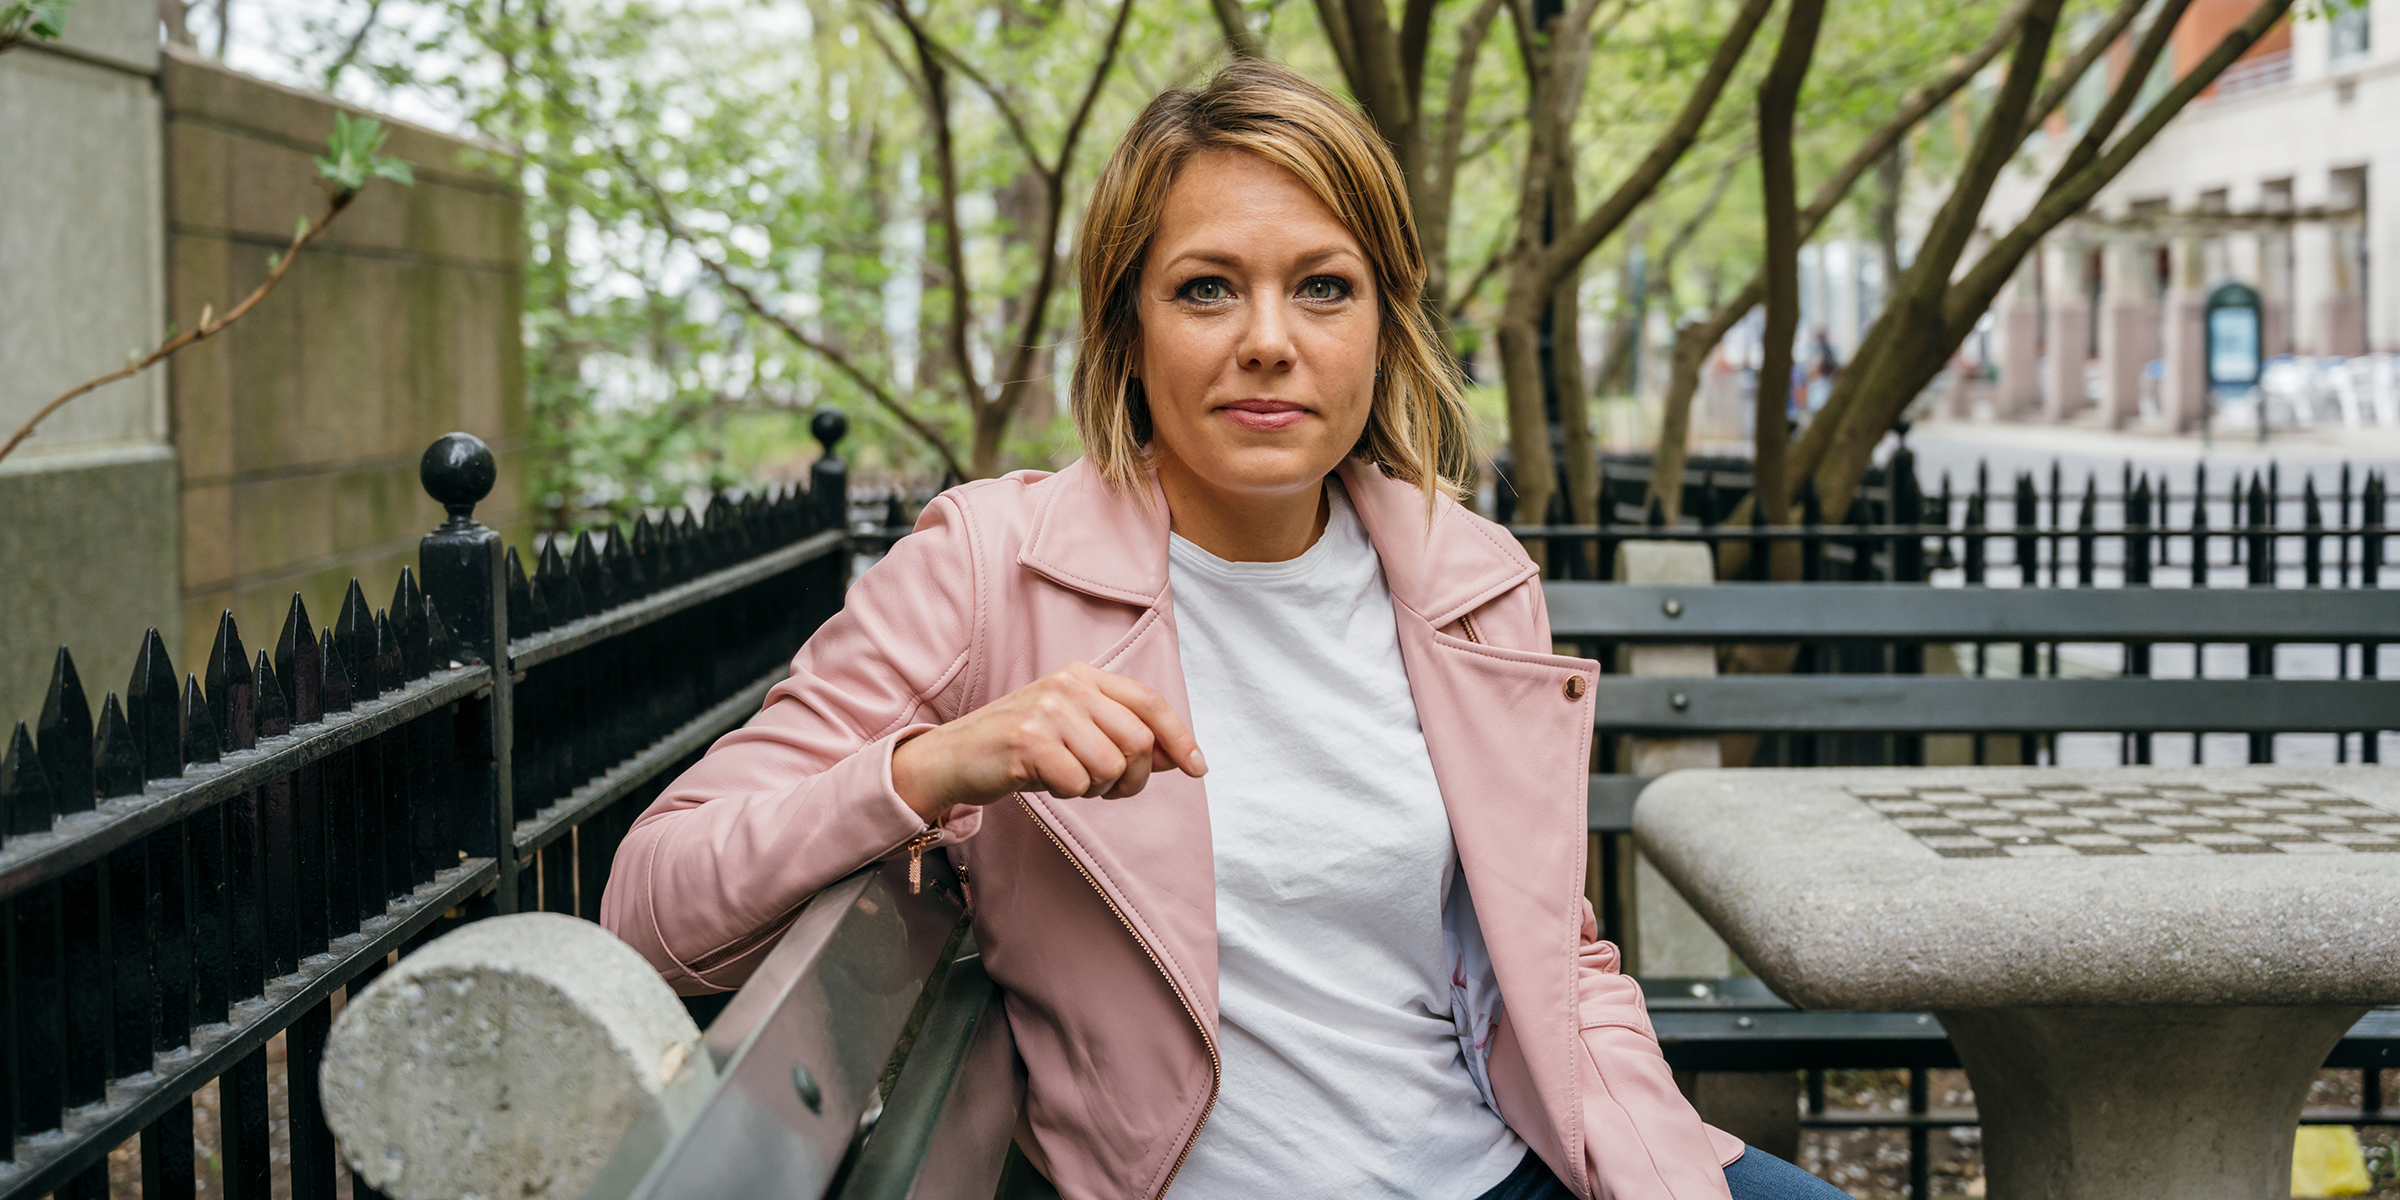 Dylan Dreyer: Why I'm talking about my miscarriage, infertility and IVF